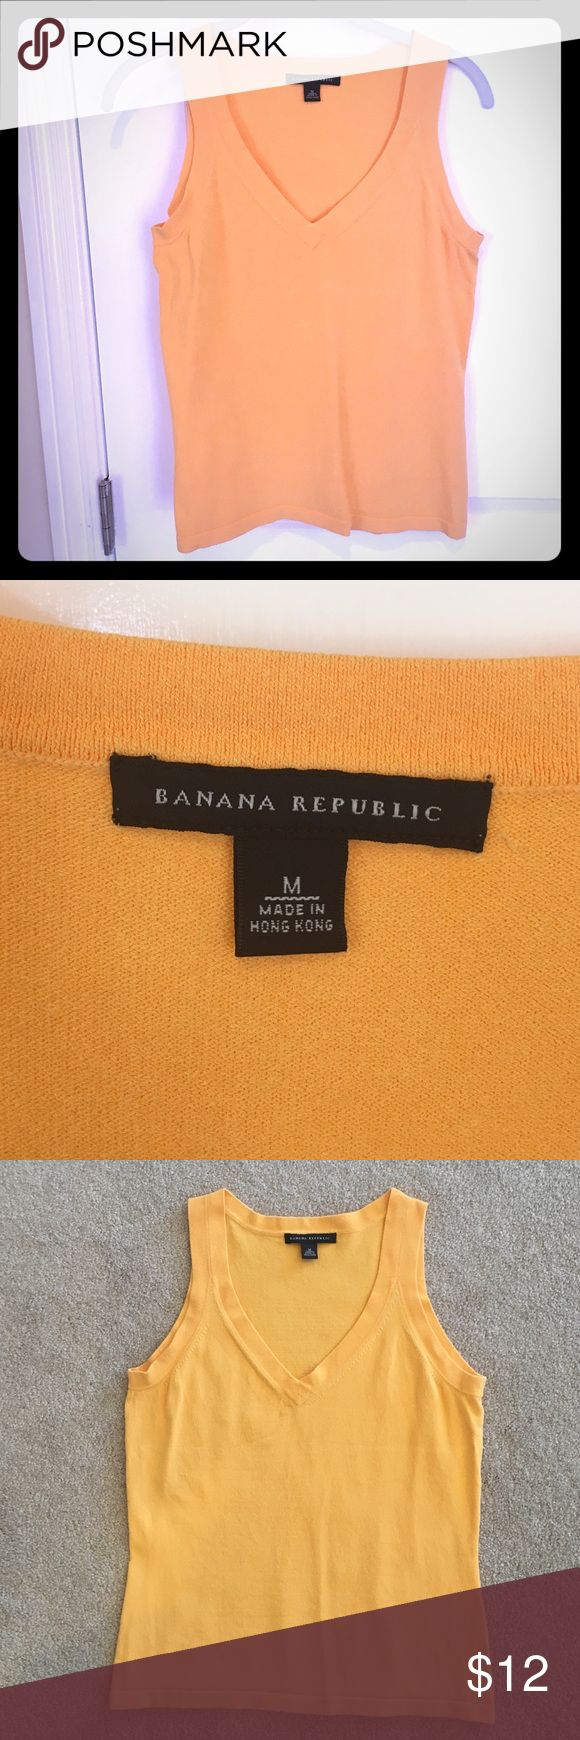 """Banana Republic Apricot Sweater Shell – sz M Beautiful light orange Banana Republic V-neck shell top in GUC. Bought from BR a few years ago and thanks to 2 pregnancies in a row, my boobs are now too big for this top! 15"""" bust, 14 1/2"""" waist, 22"""" from shoulder to bottom.  Measurements taken when laid flat. I chose not to buy the sweater when I bought the shell, but maybe sweater is being poshed here as well! No trades! Offers always considered! Questions? Ask away! Banana Republic Tops"""